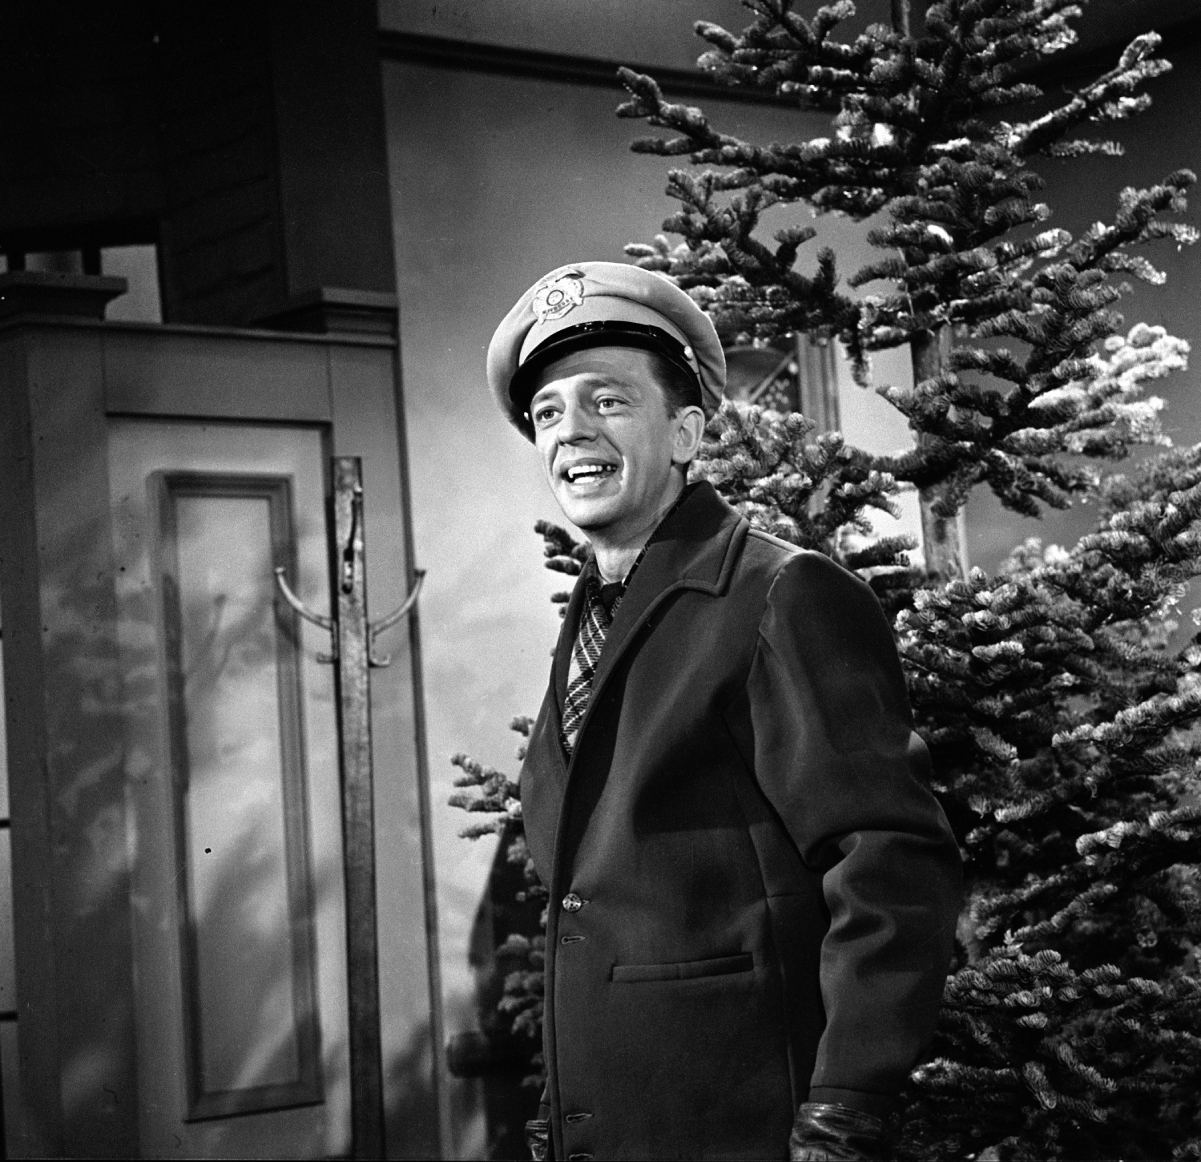 'The Andy Griffith Show' actor Don Knotts